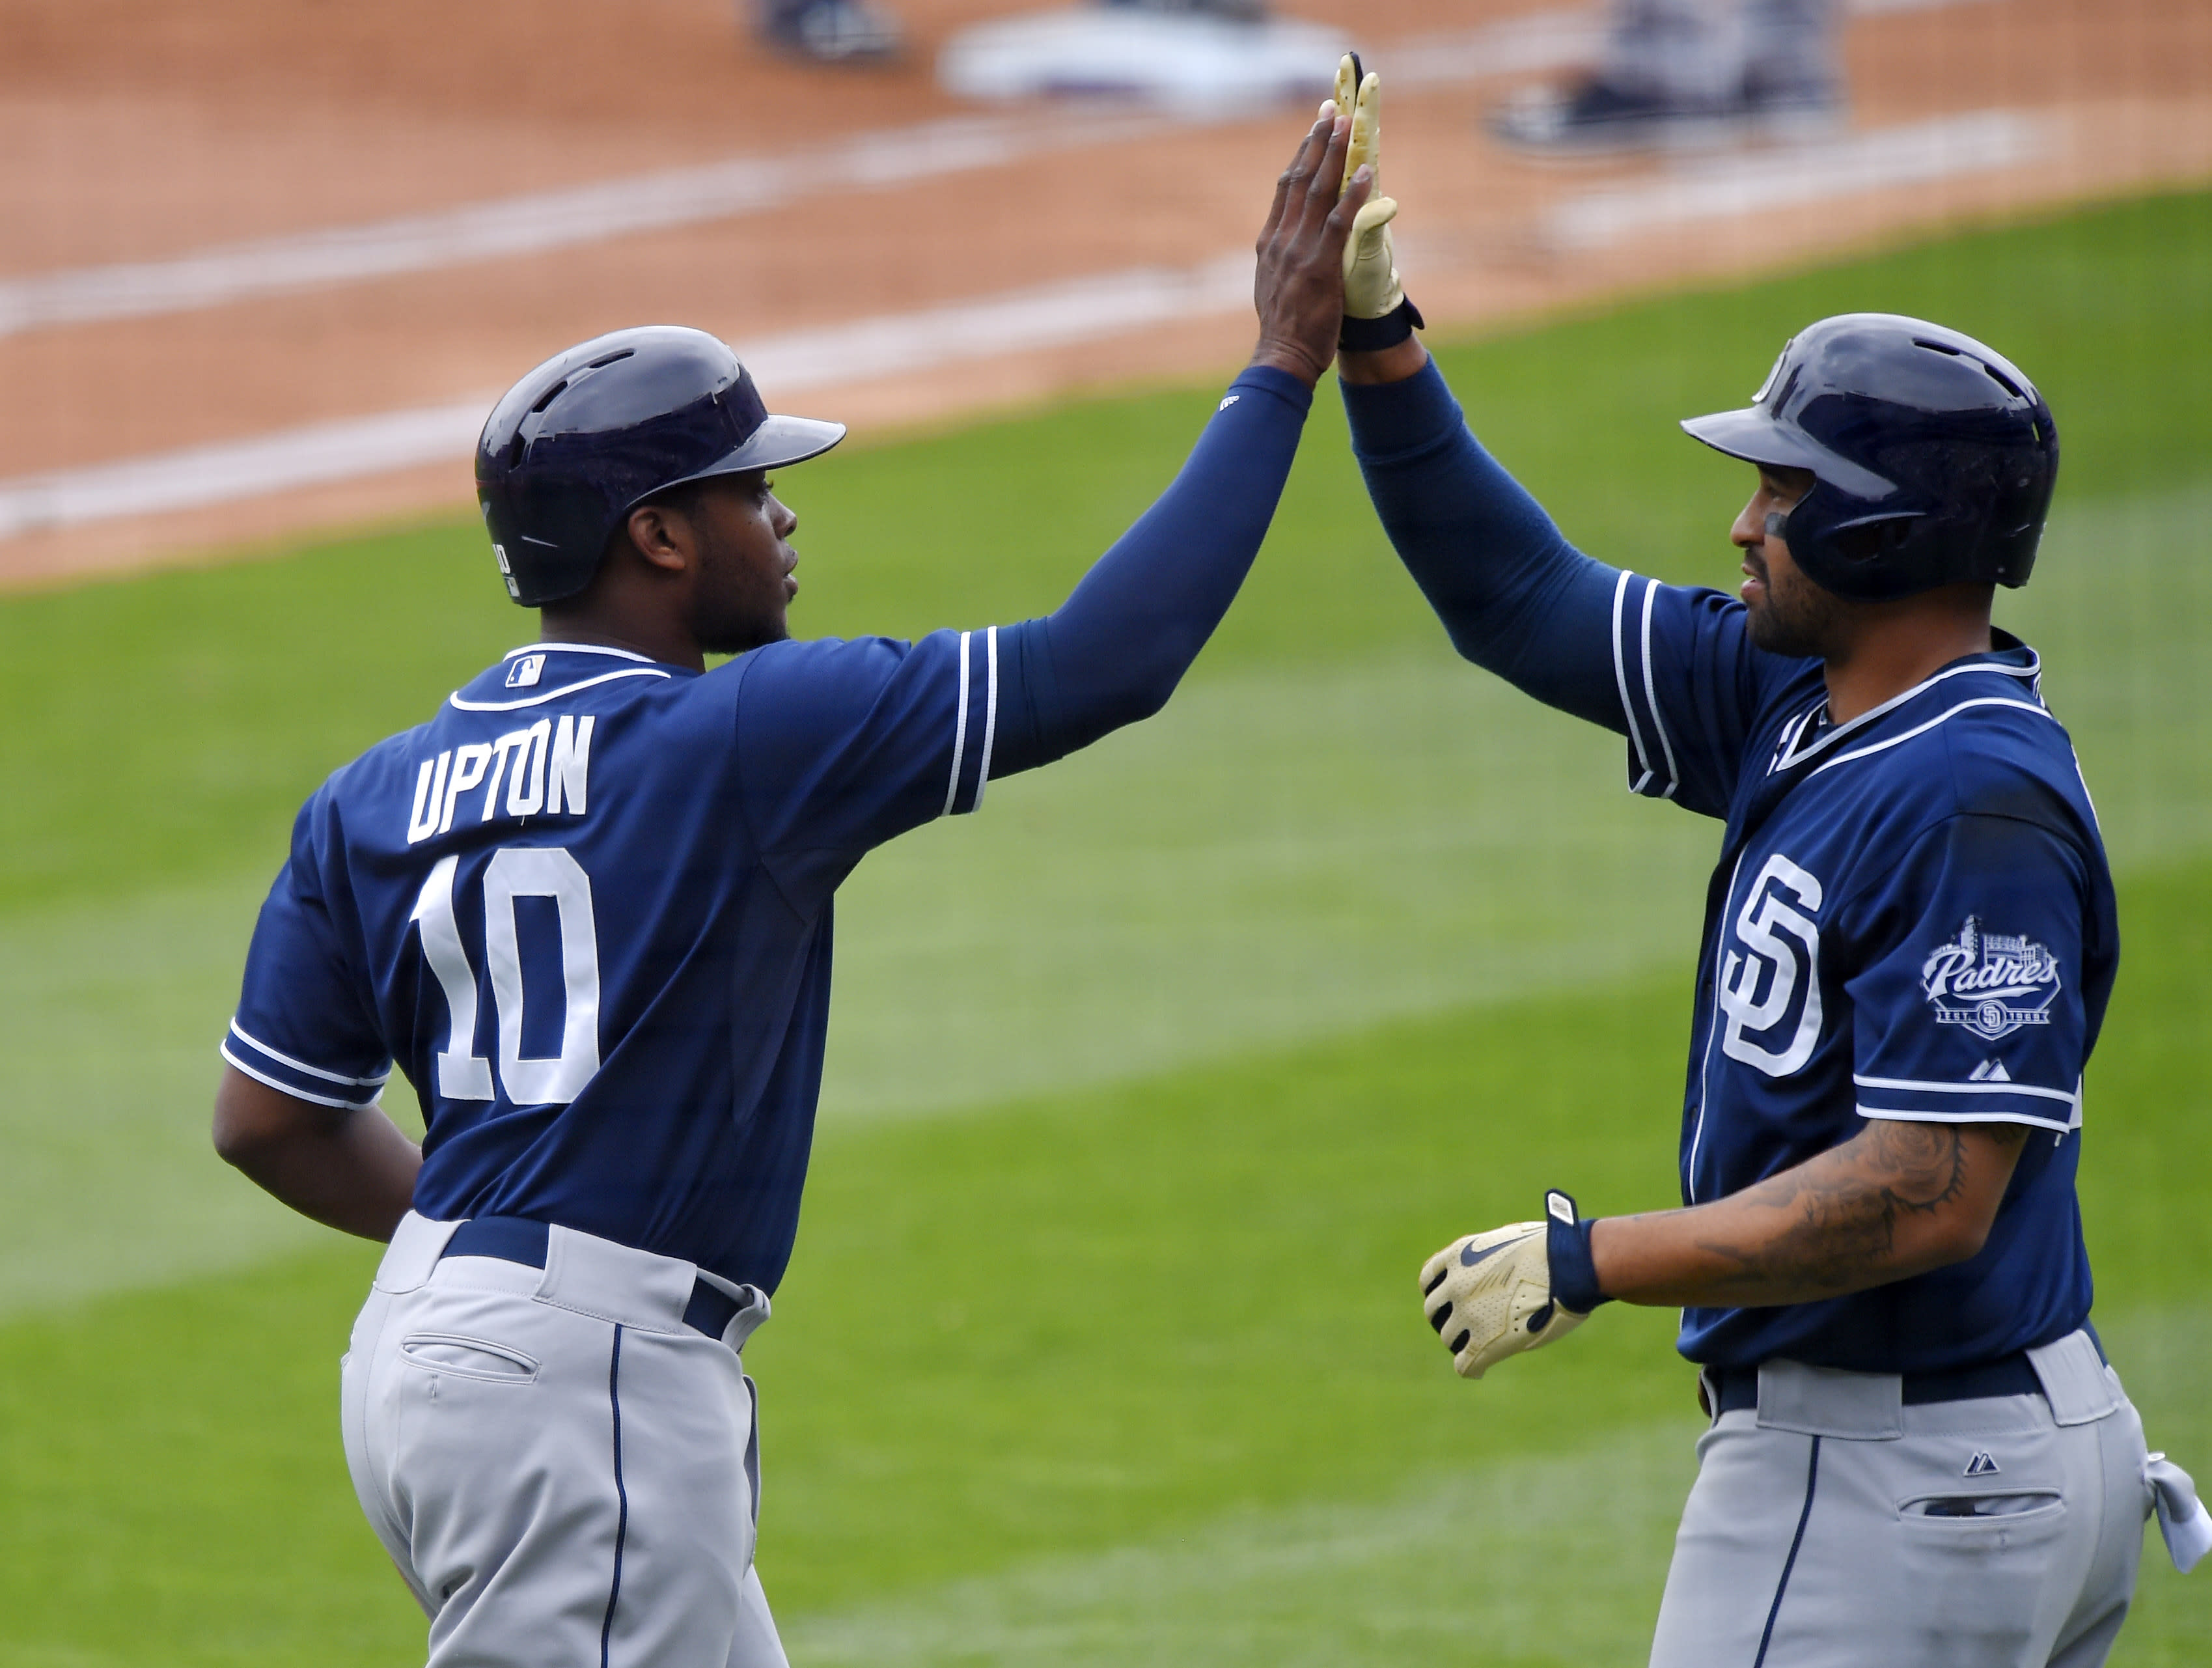 Justin Upton's slam, 6 RBIs lead Shields, Pads over Dodgers